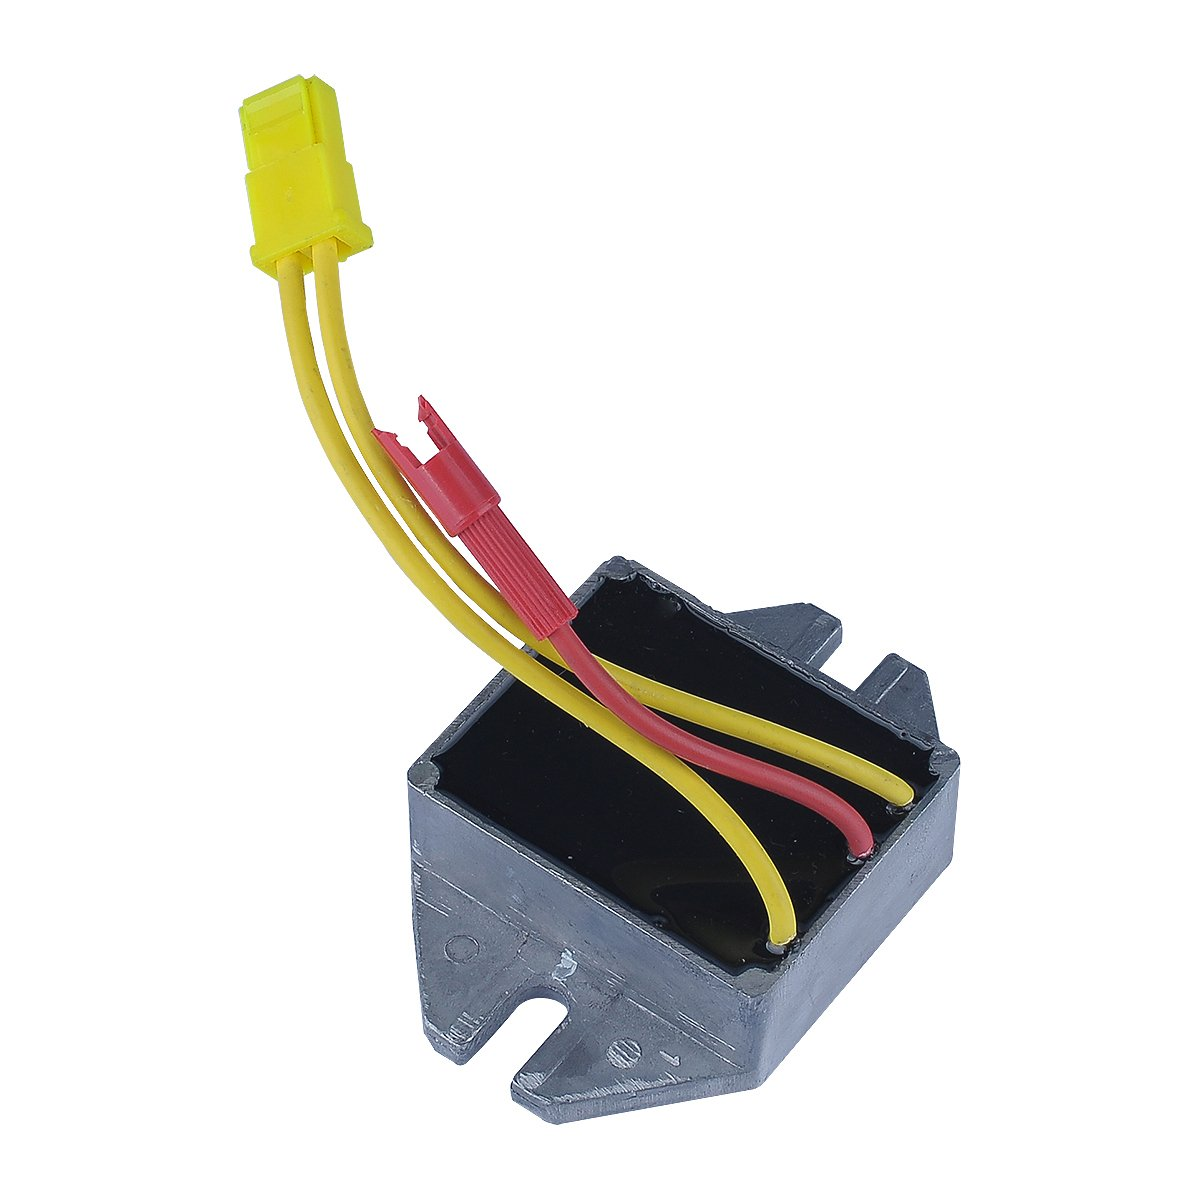 Hilom Replacement Voltage Regulator for Briggs and Stratton 394890 393374 691185 797375 797182 845907 by Hilom